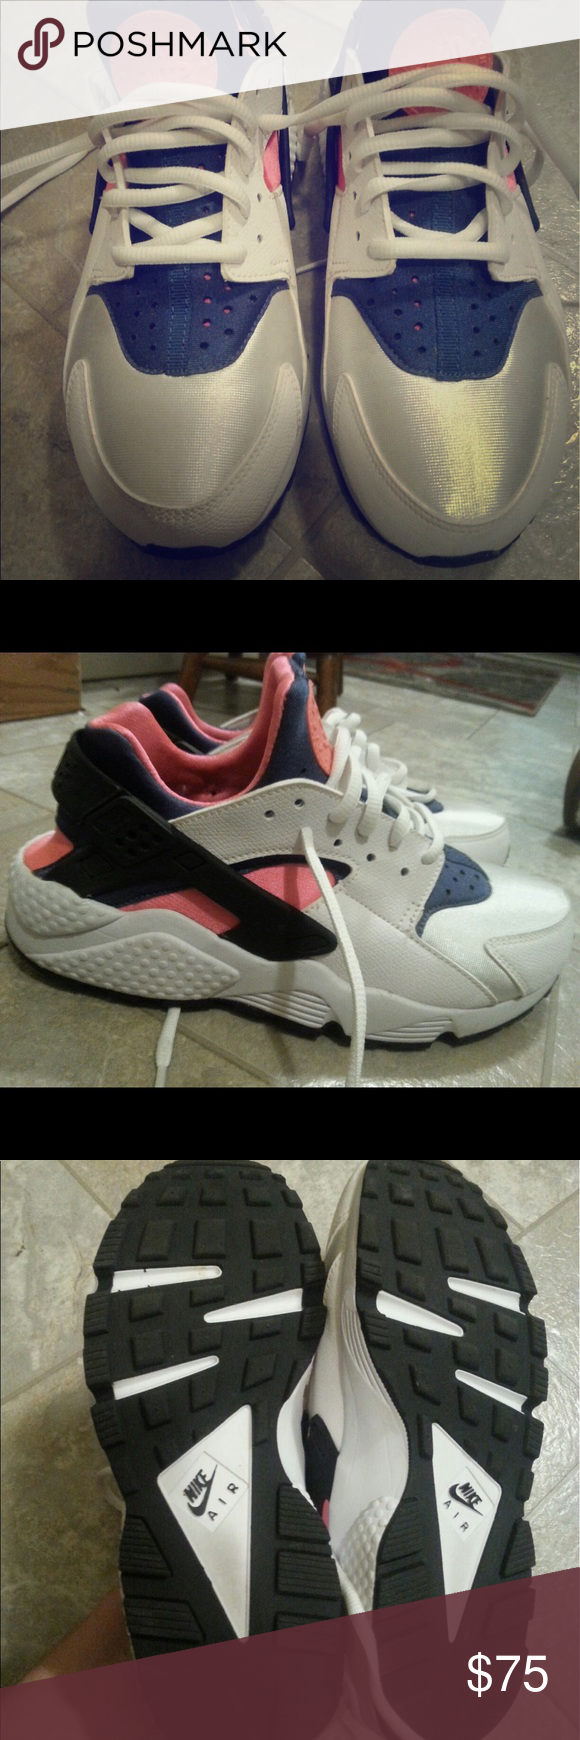 Women s Nike Huaraches Women s Huraches. Bought and did not fit. They are a  size 8 but runs small. I accept offers the worst I can do is say no. 7a405d65d1